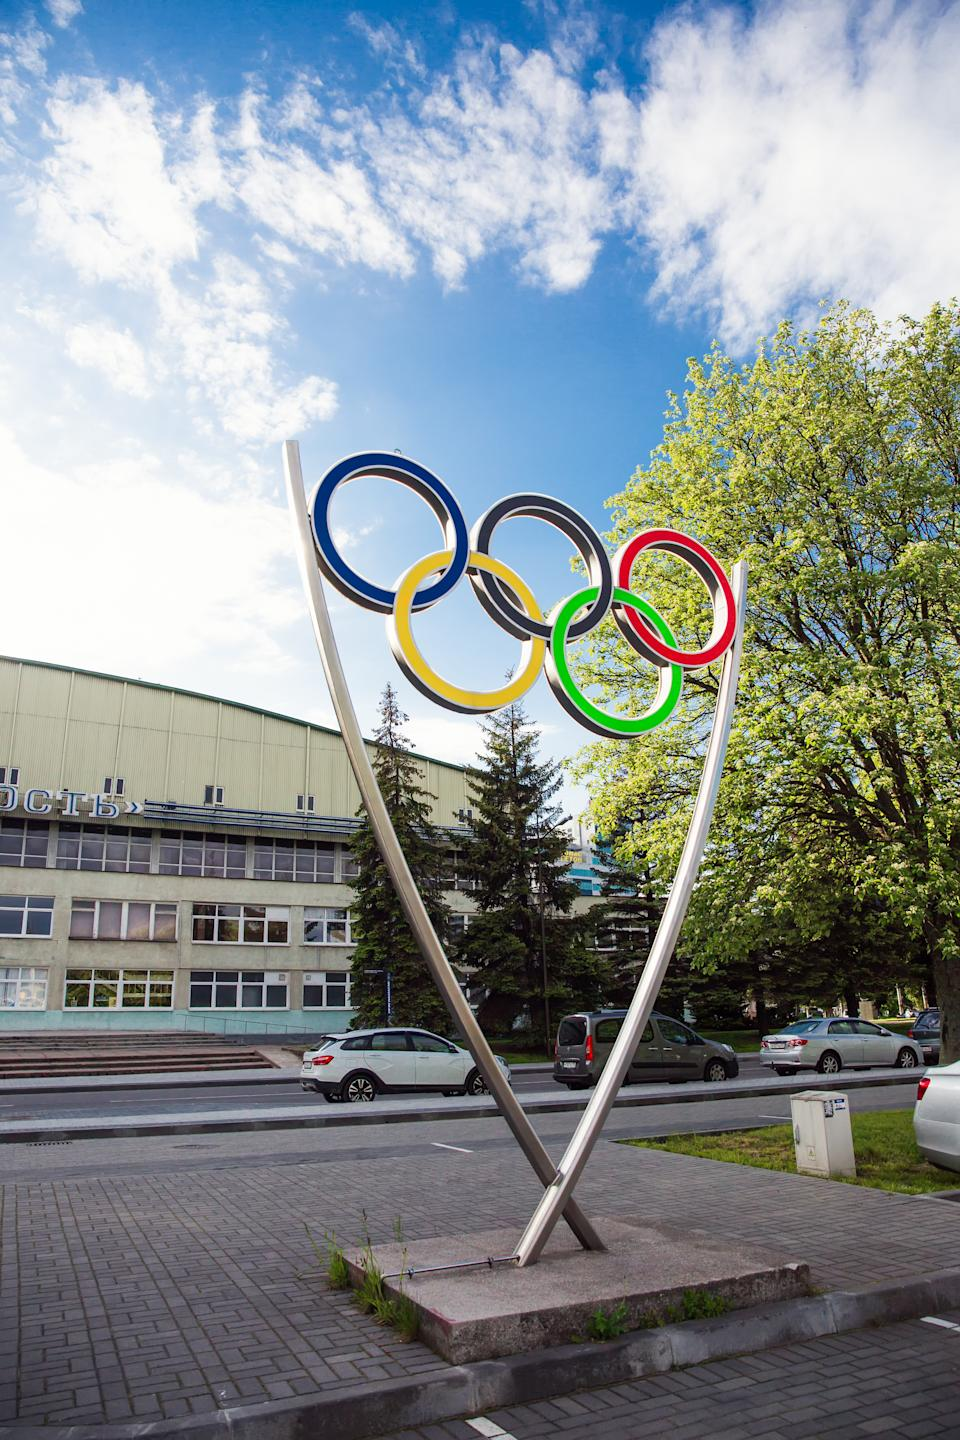 Sign of Olympic rings, symbol of Olympics in urban environment.